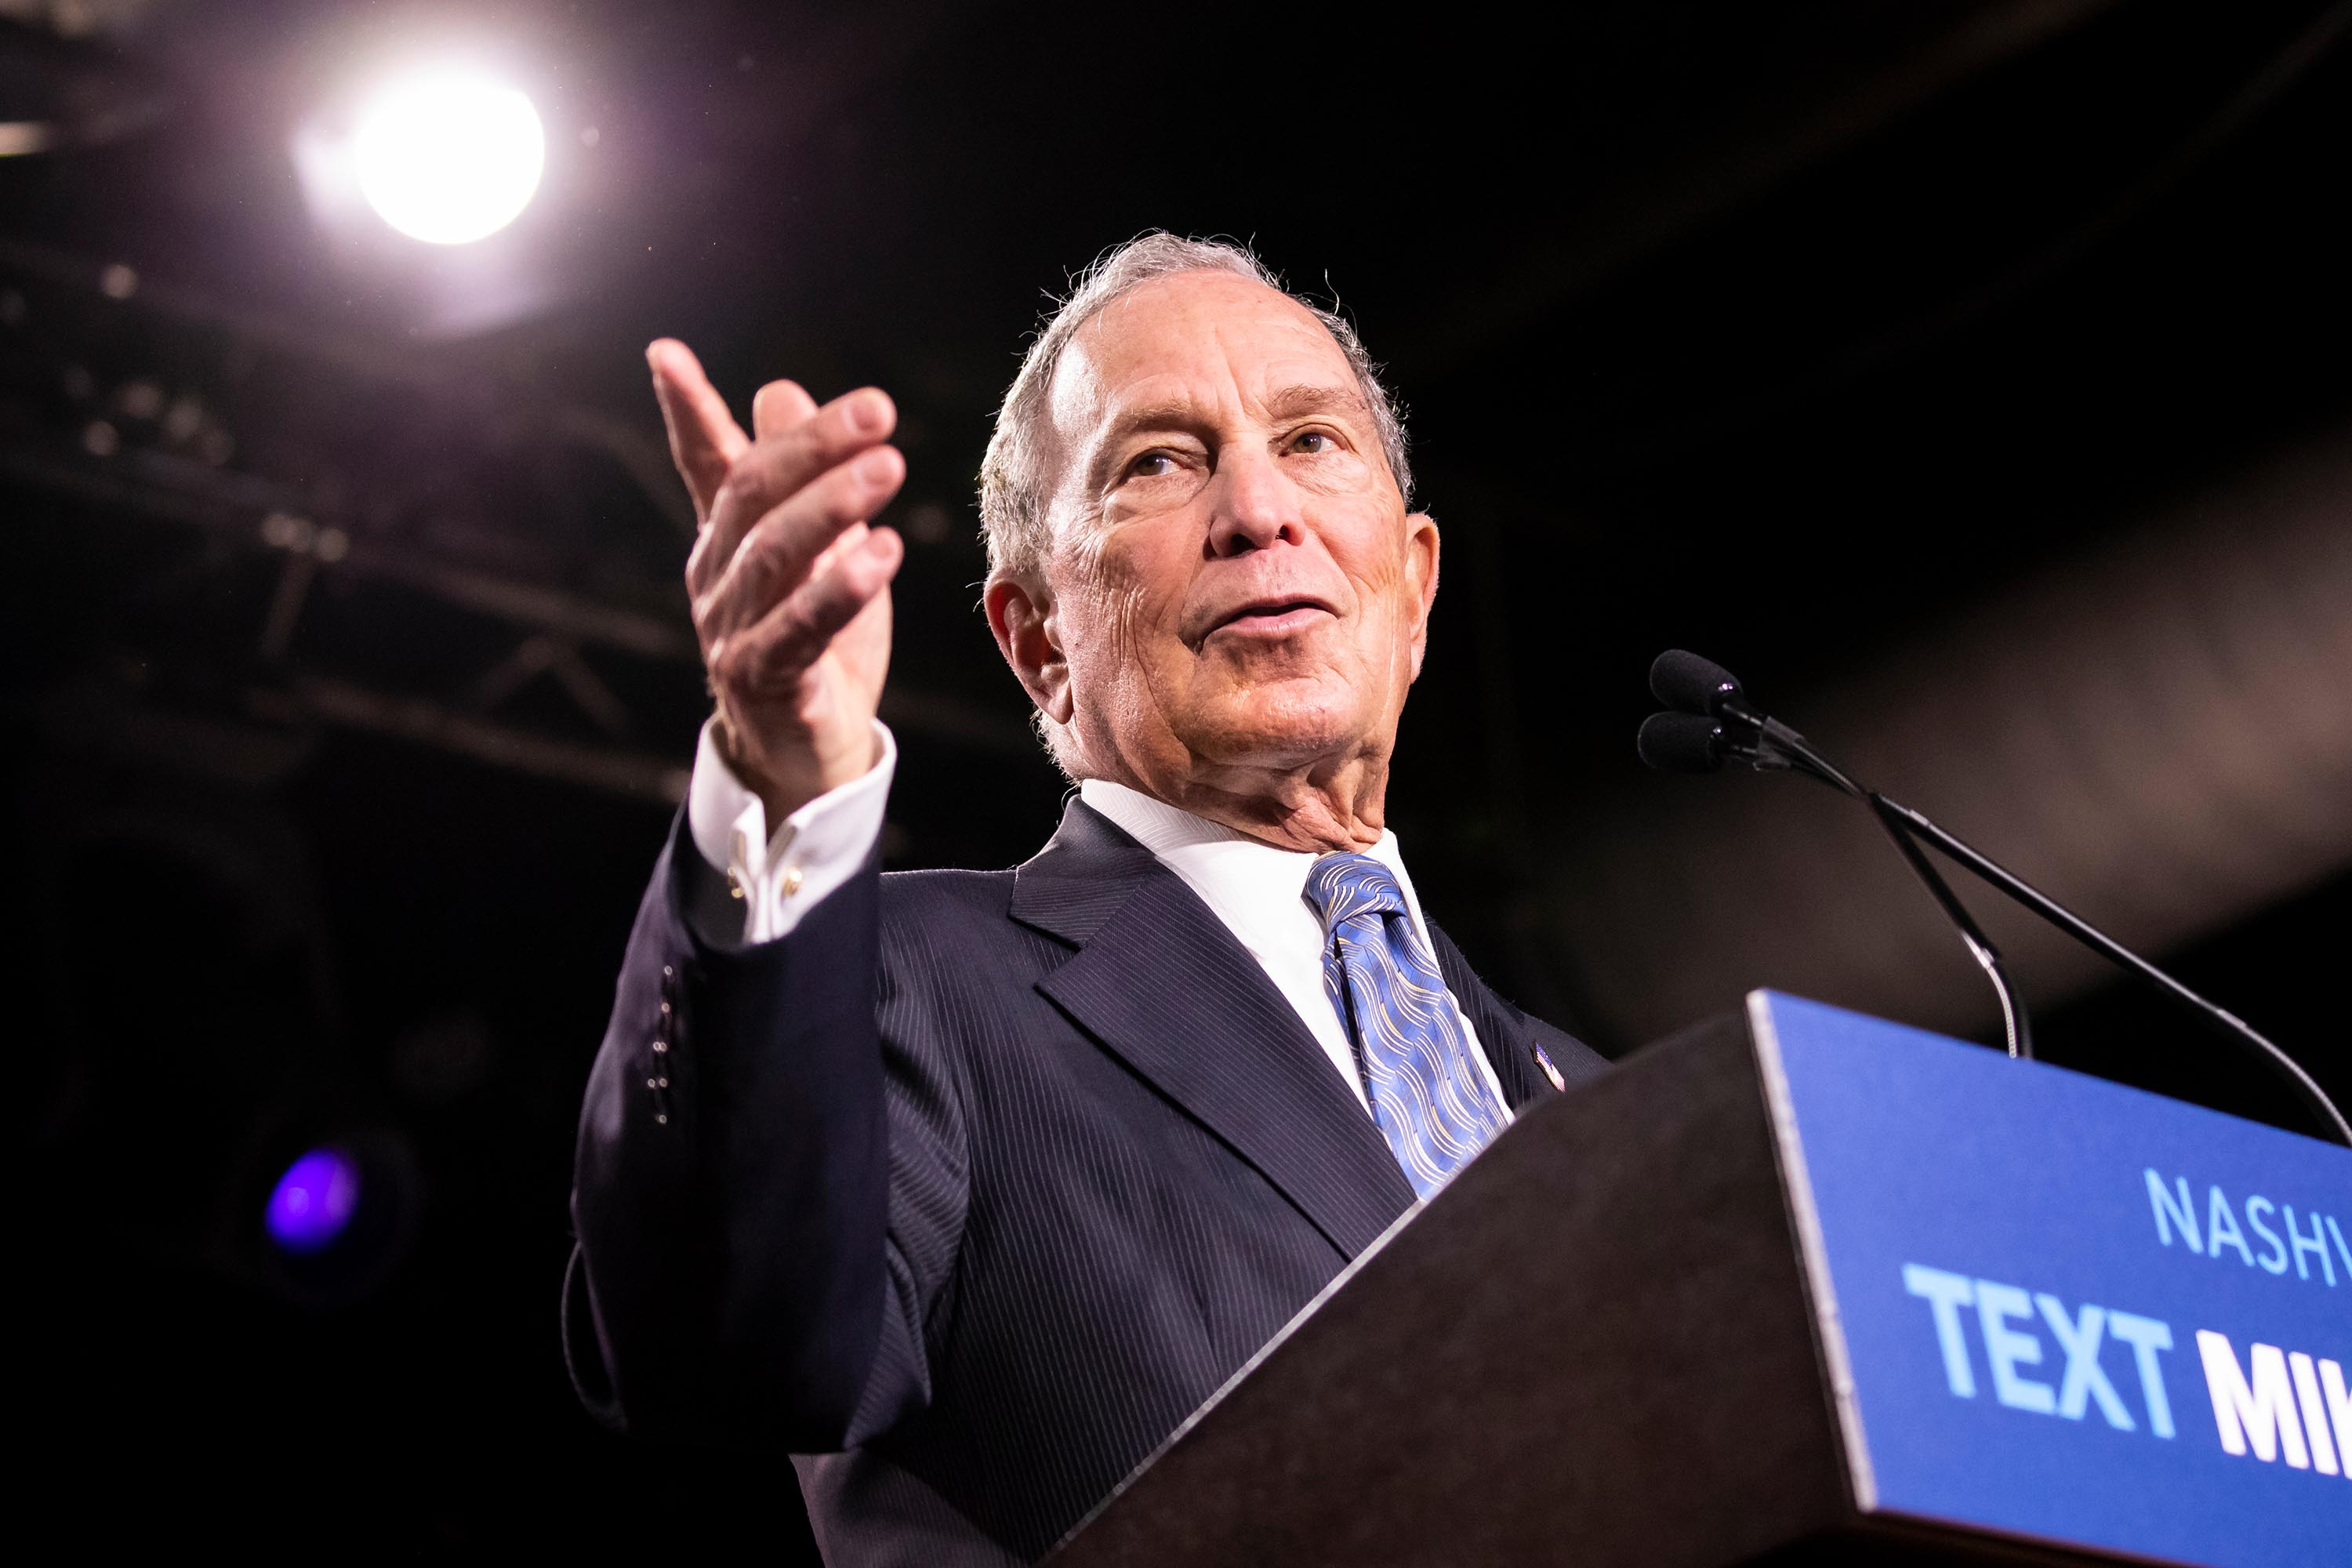 Bloomberg qualifies for Wednesday's Democratic debate — his first